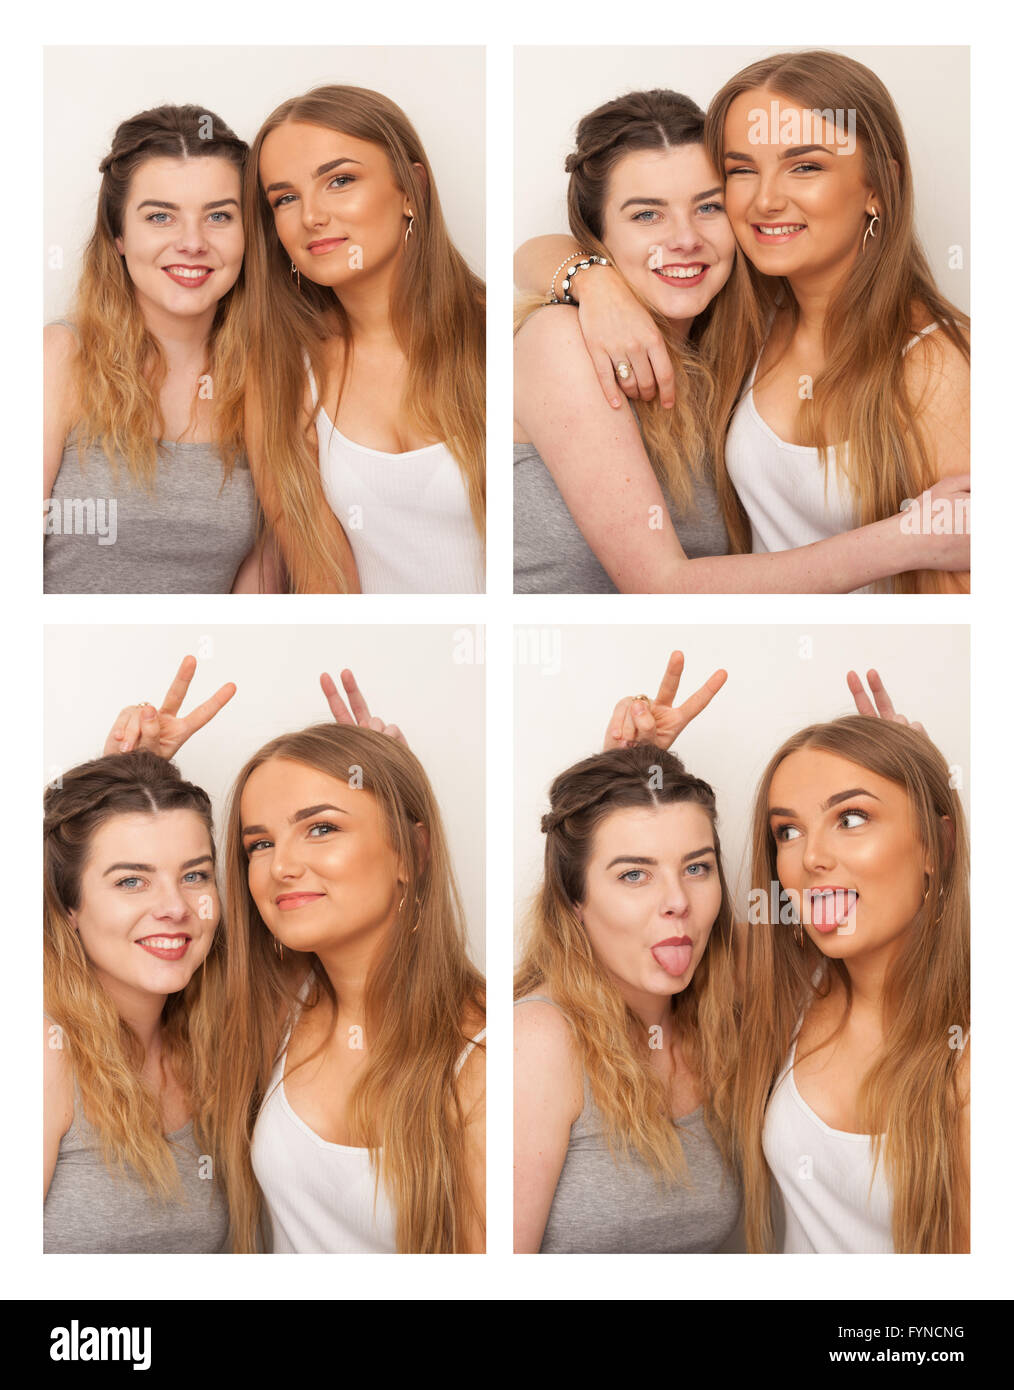 Two girls messing about in a sequence of passport style pictures. - Stock Image